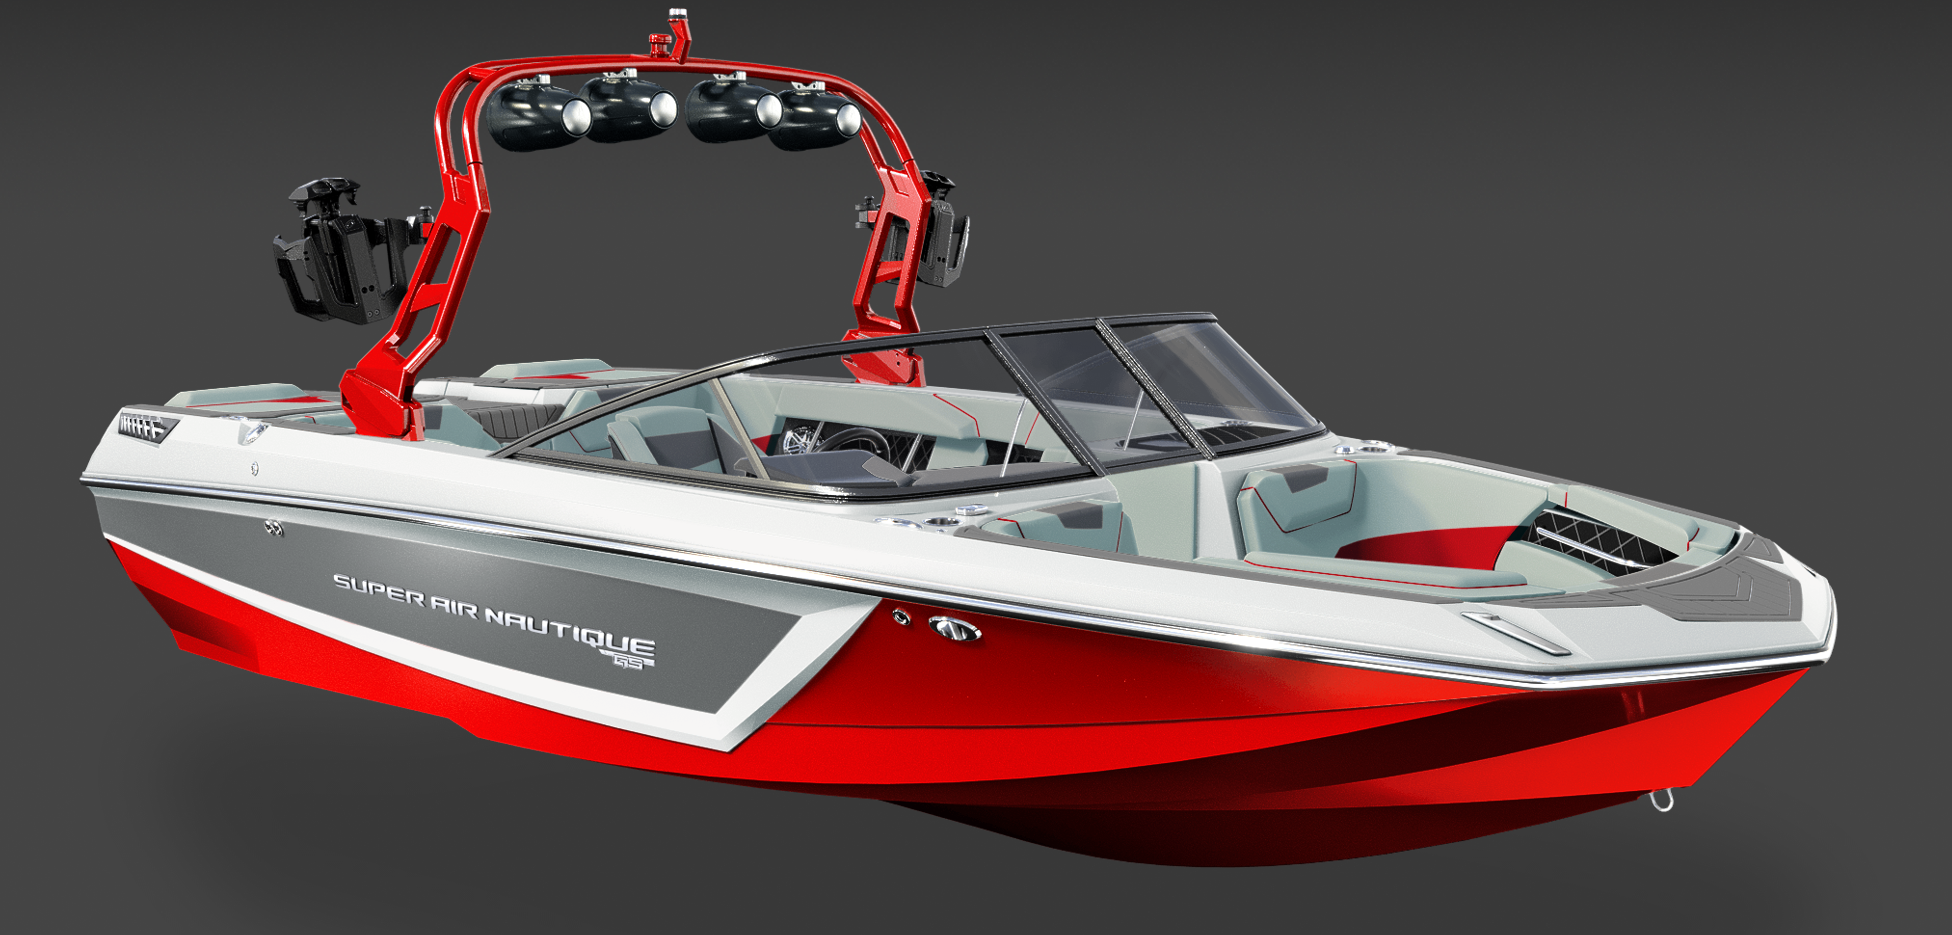 2019 Super Air Nautique Red and Gray GS22 for sale in Wichita, Kansas at All Elements Auto and Marine